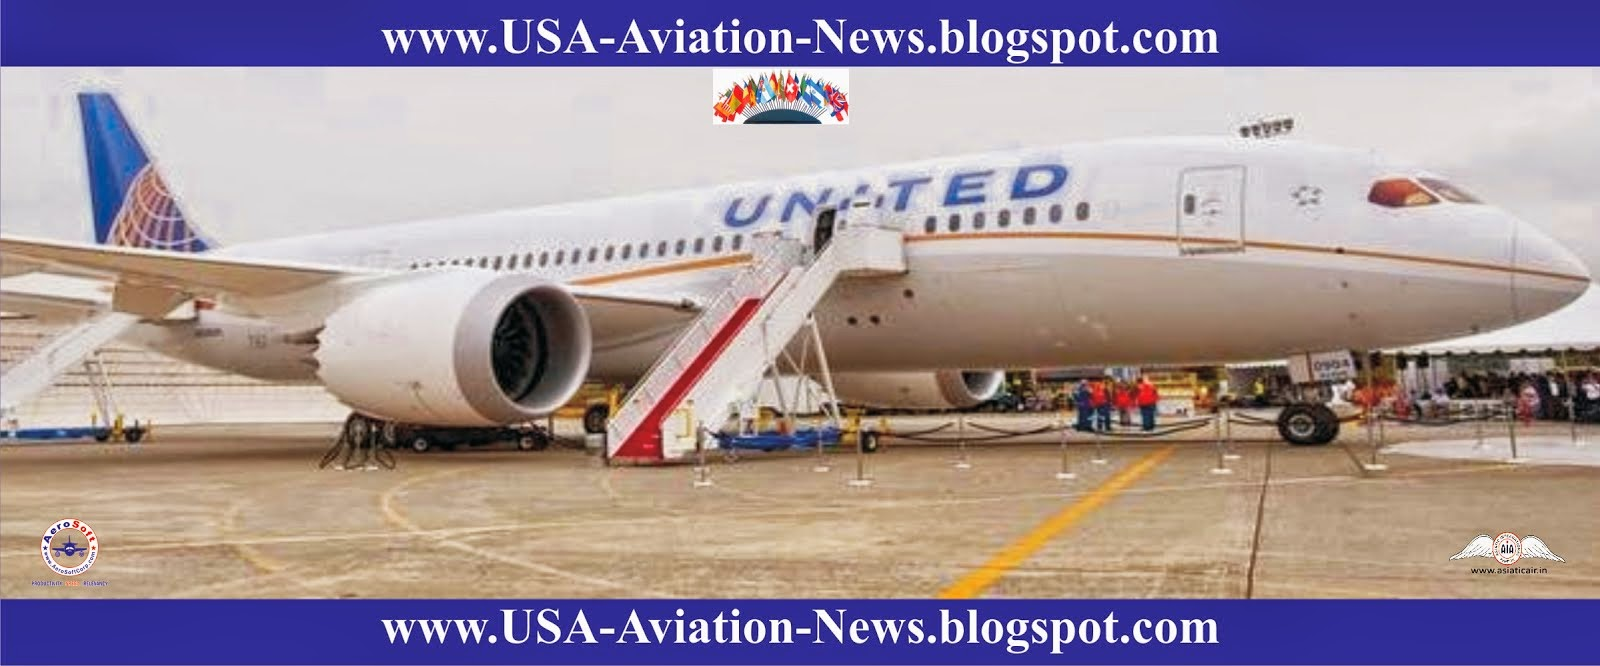 USA Aviation NEWS